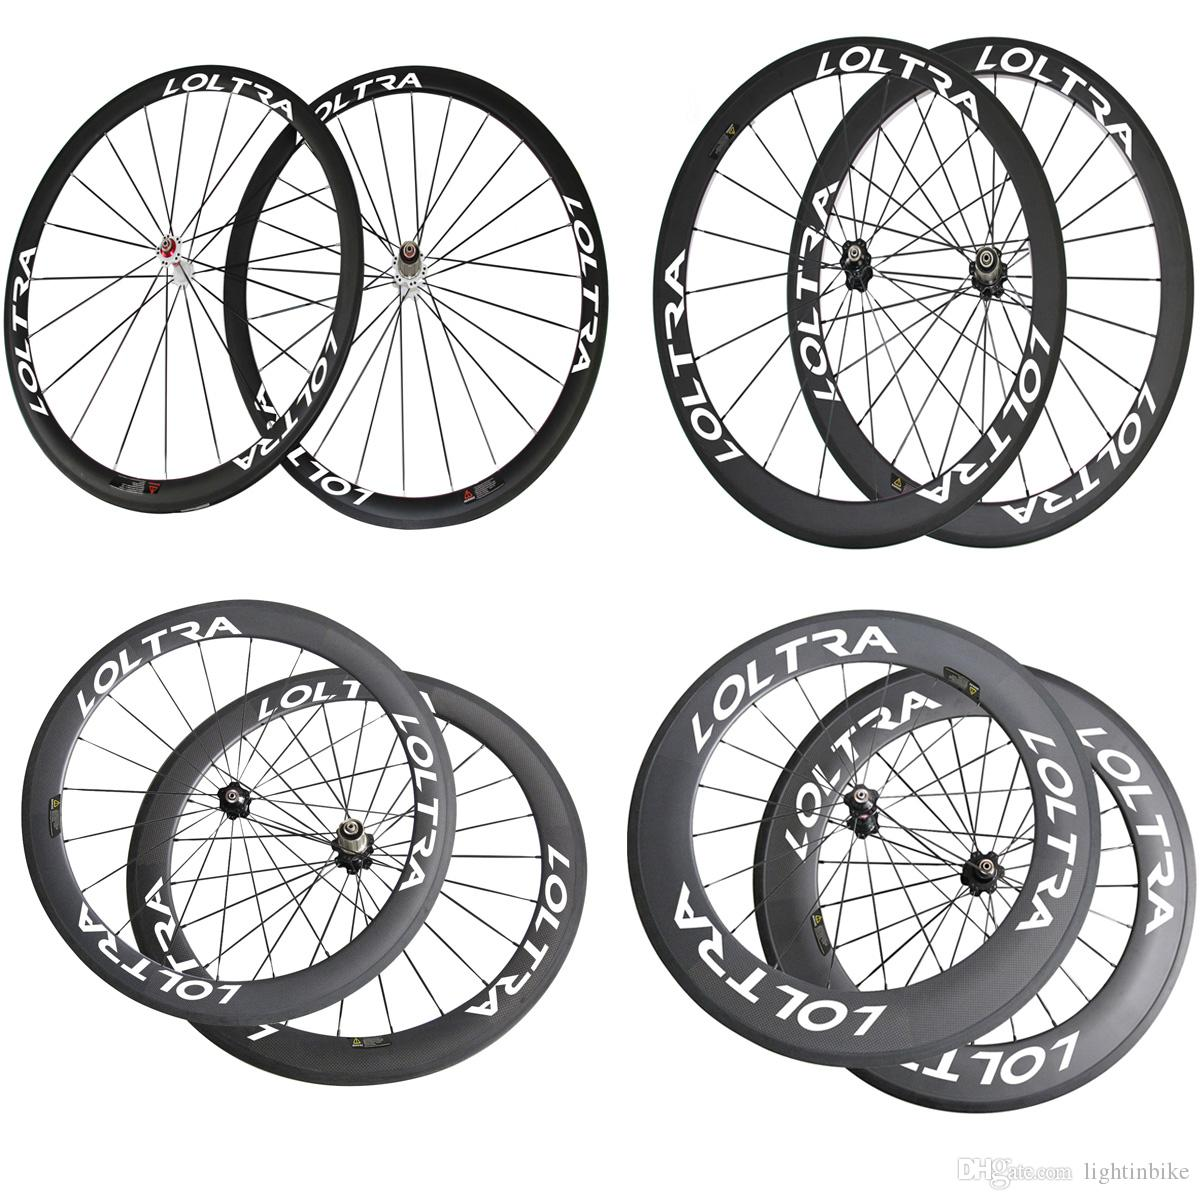 White decal full carbon 24mm 38mm 50mm 60mm 88mm clincher tubular road bike wheels with novatec hub road bicycle wheelset bike wheel set bicycle components